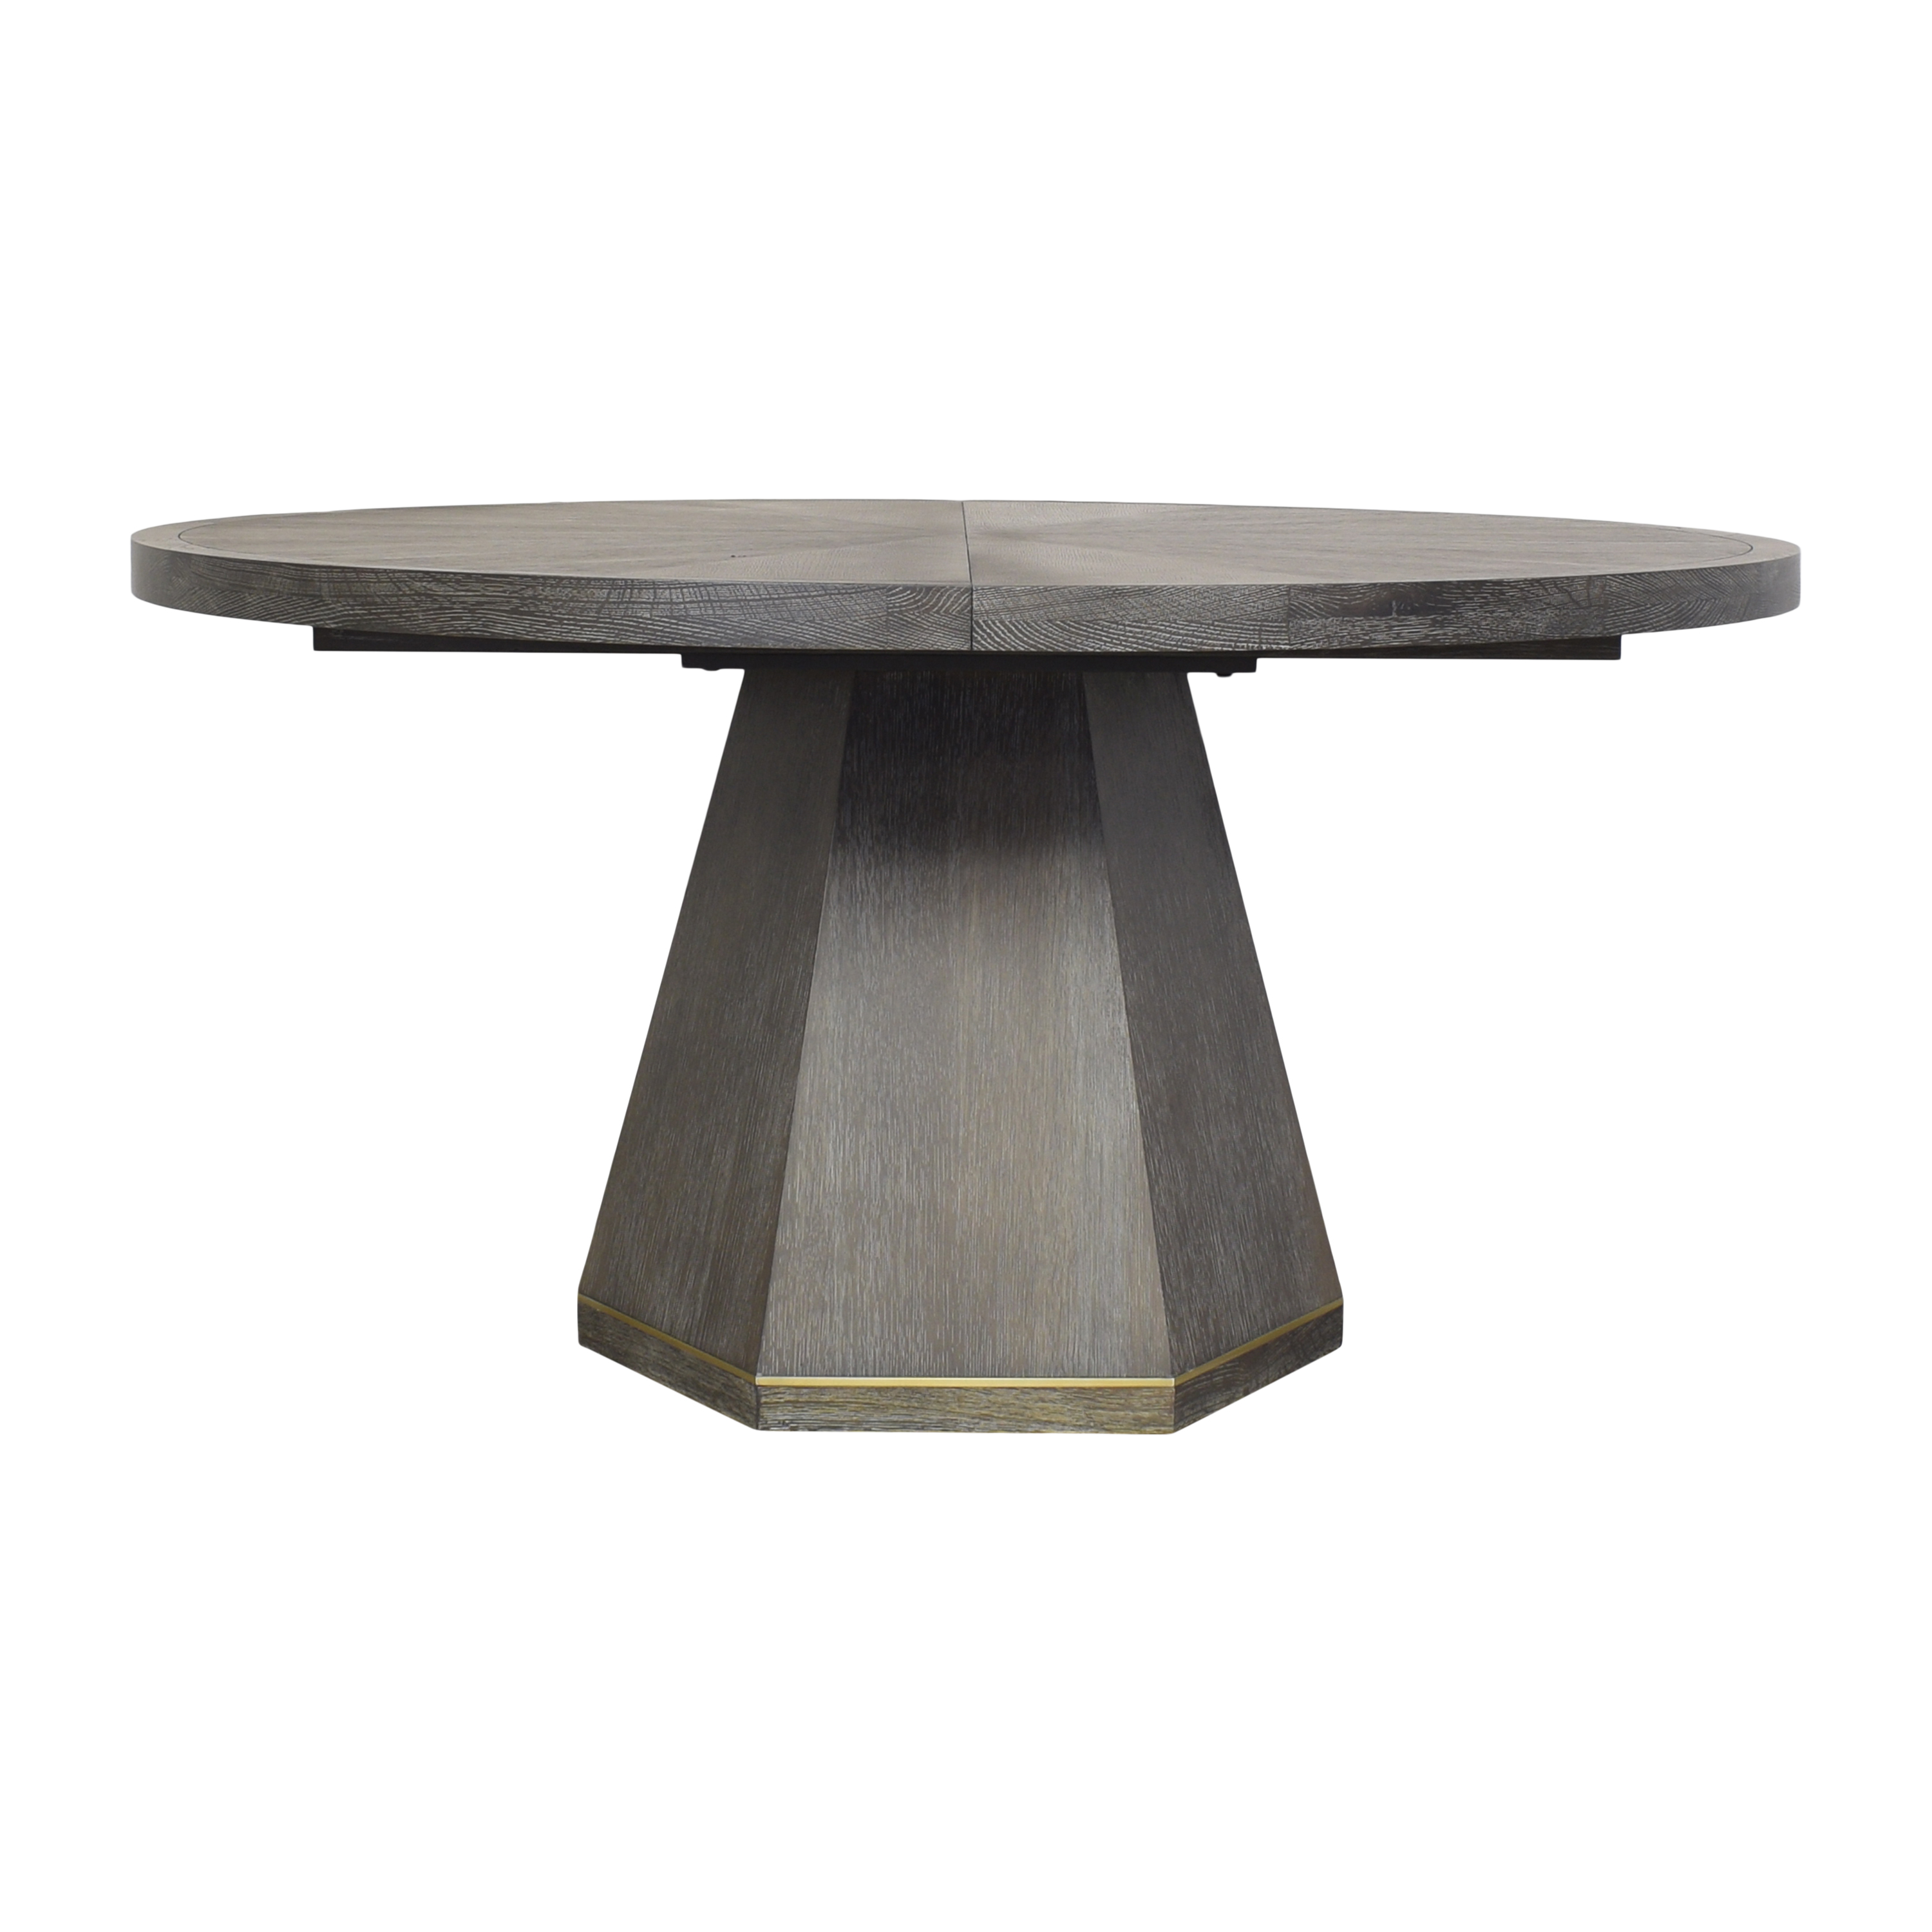 Mitchell Gold + Bob Williams Mitchell Gold + Bob Williams Emerson Round Dining Table for sale